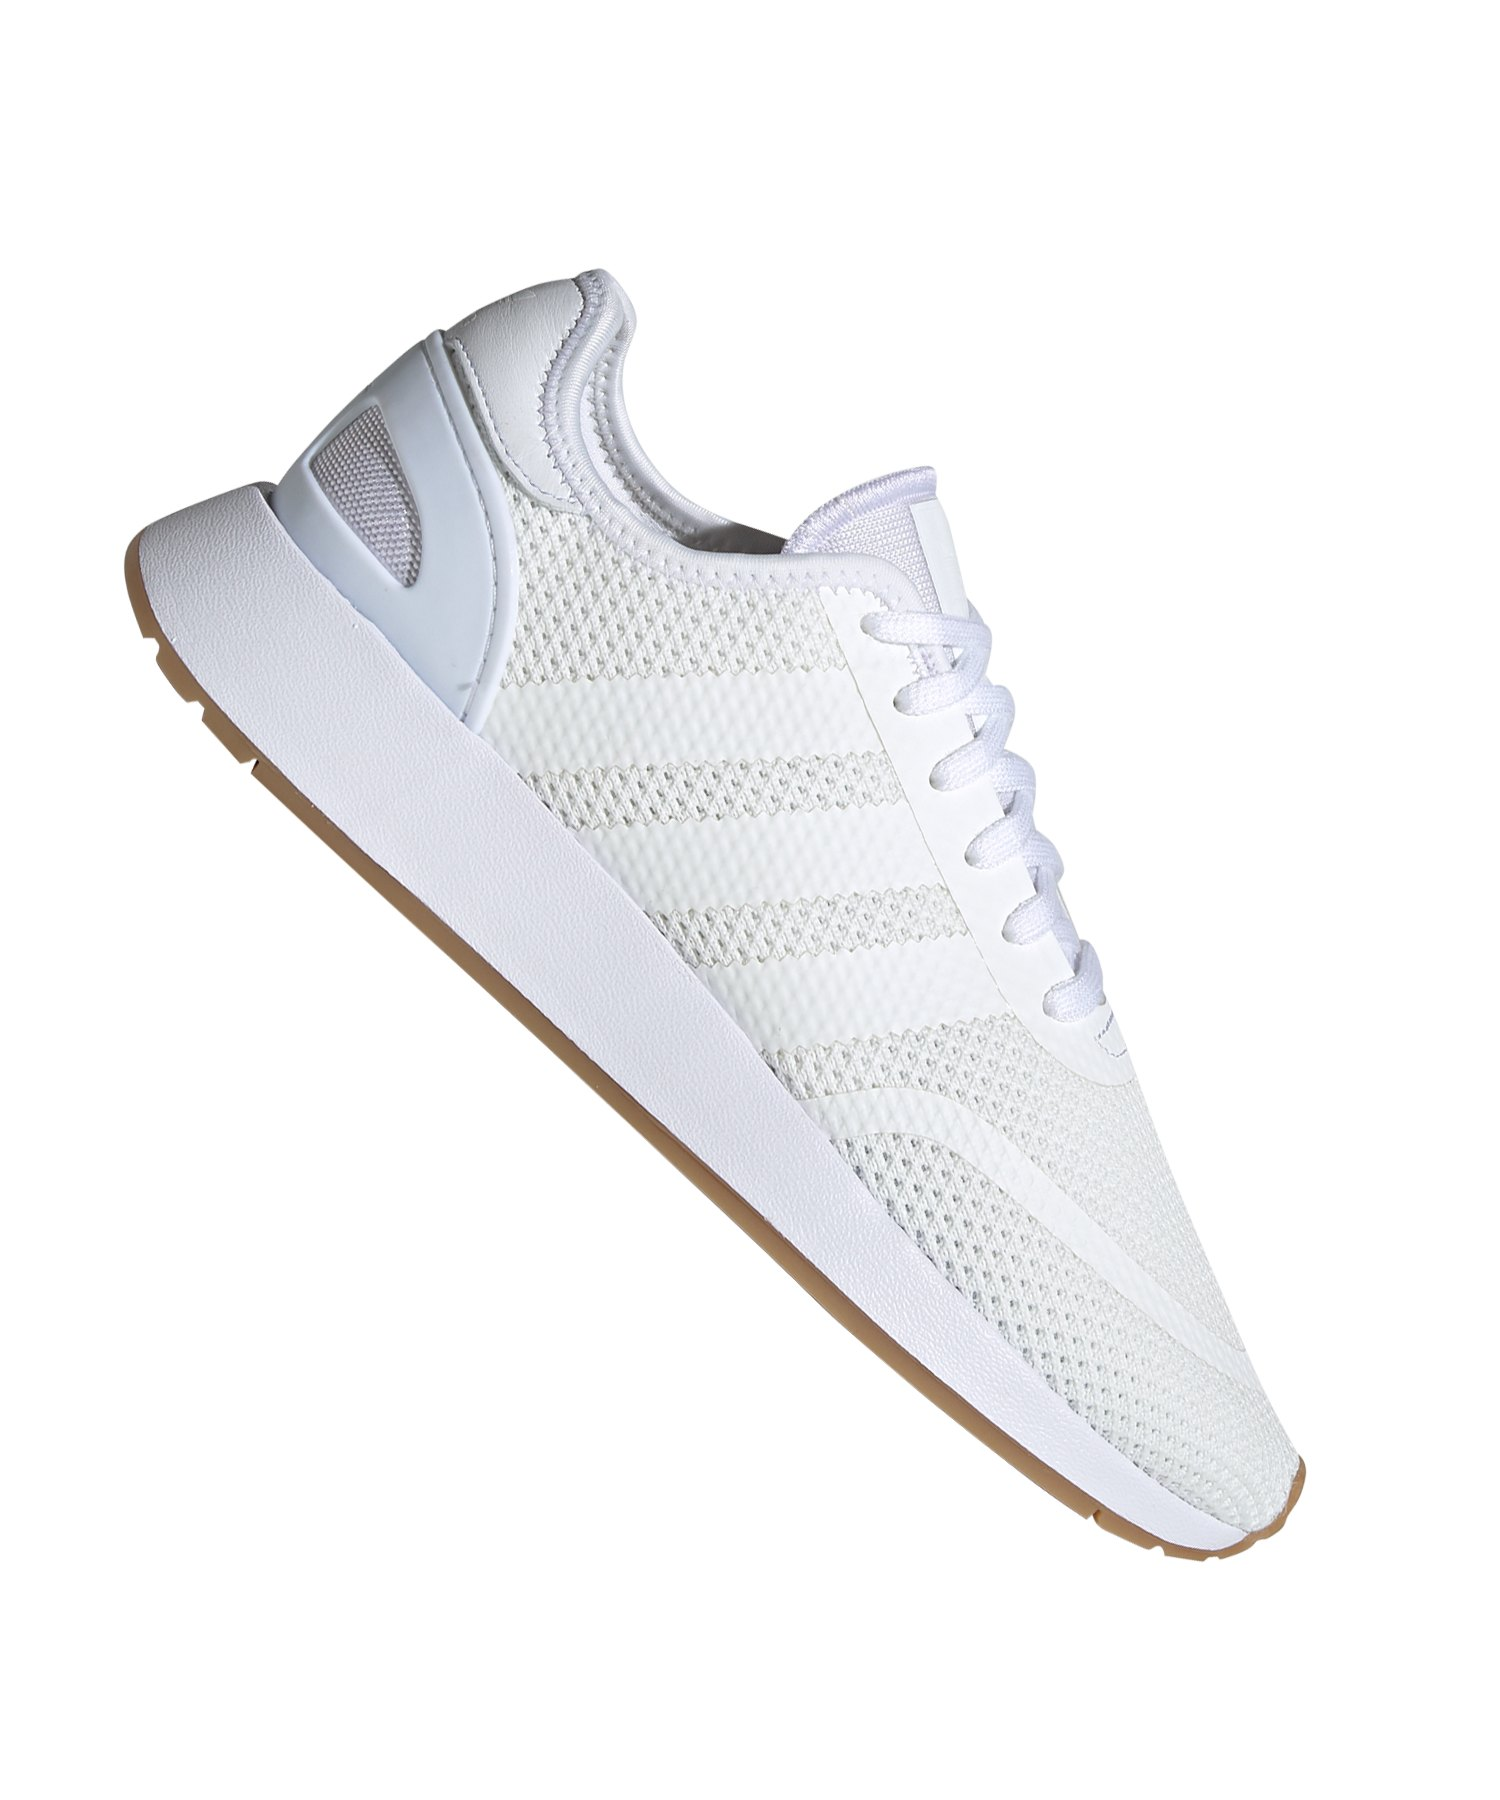 2020 Grün Adidas Originals Schuhe Orange Series Herren Us